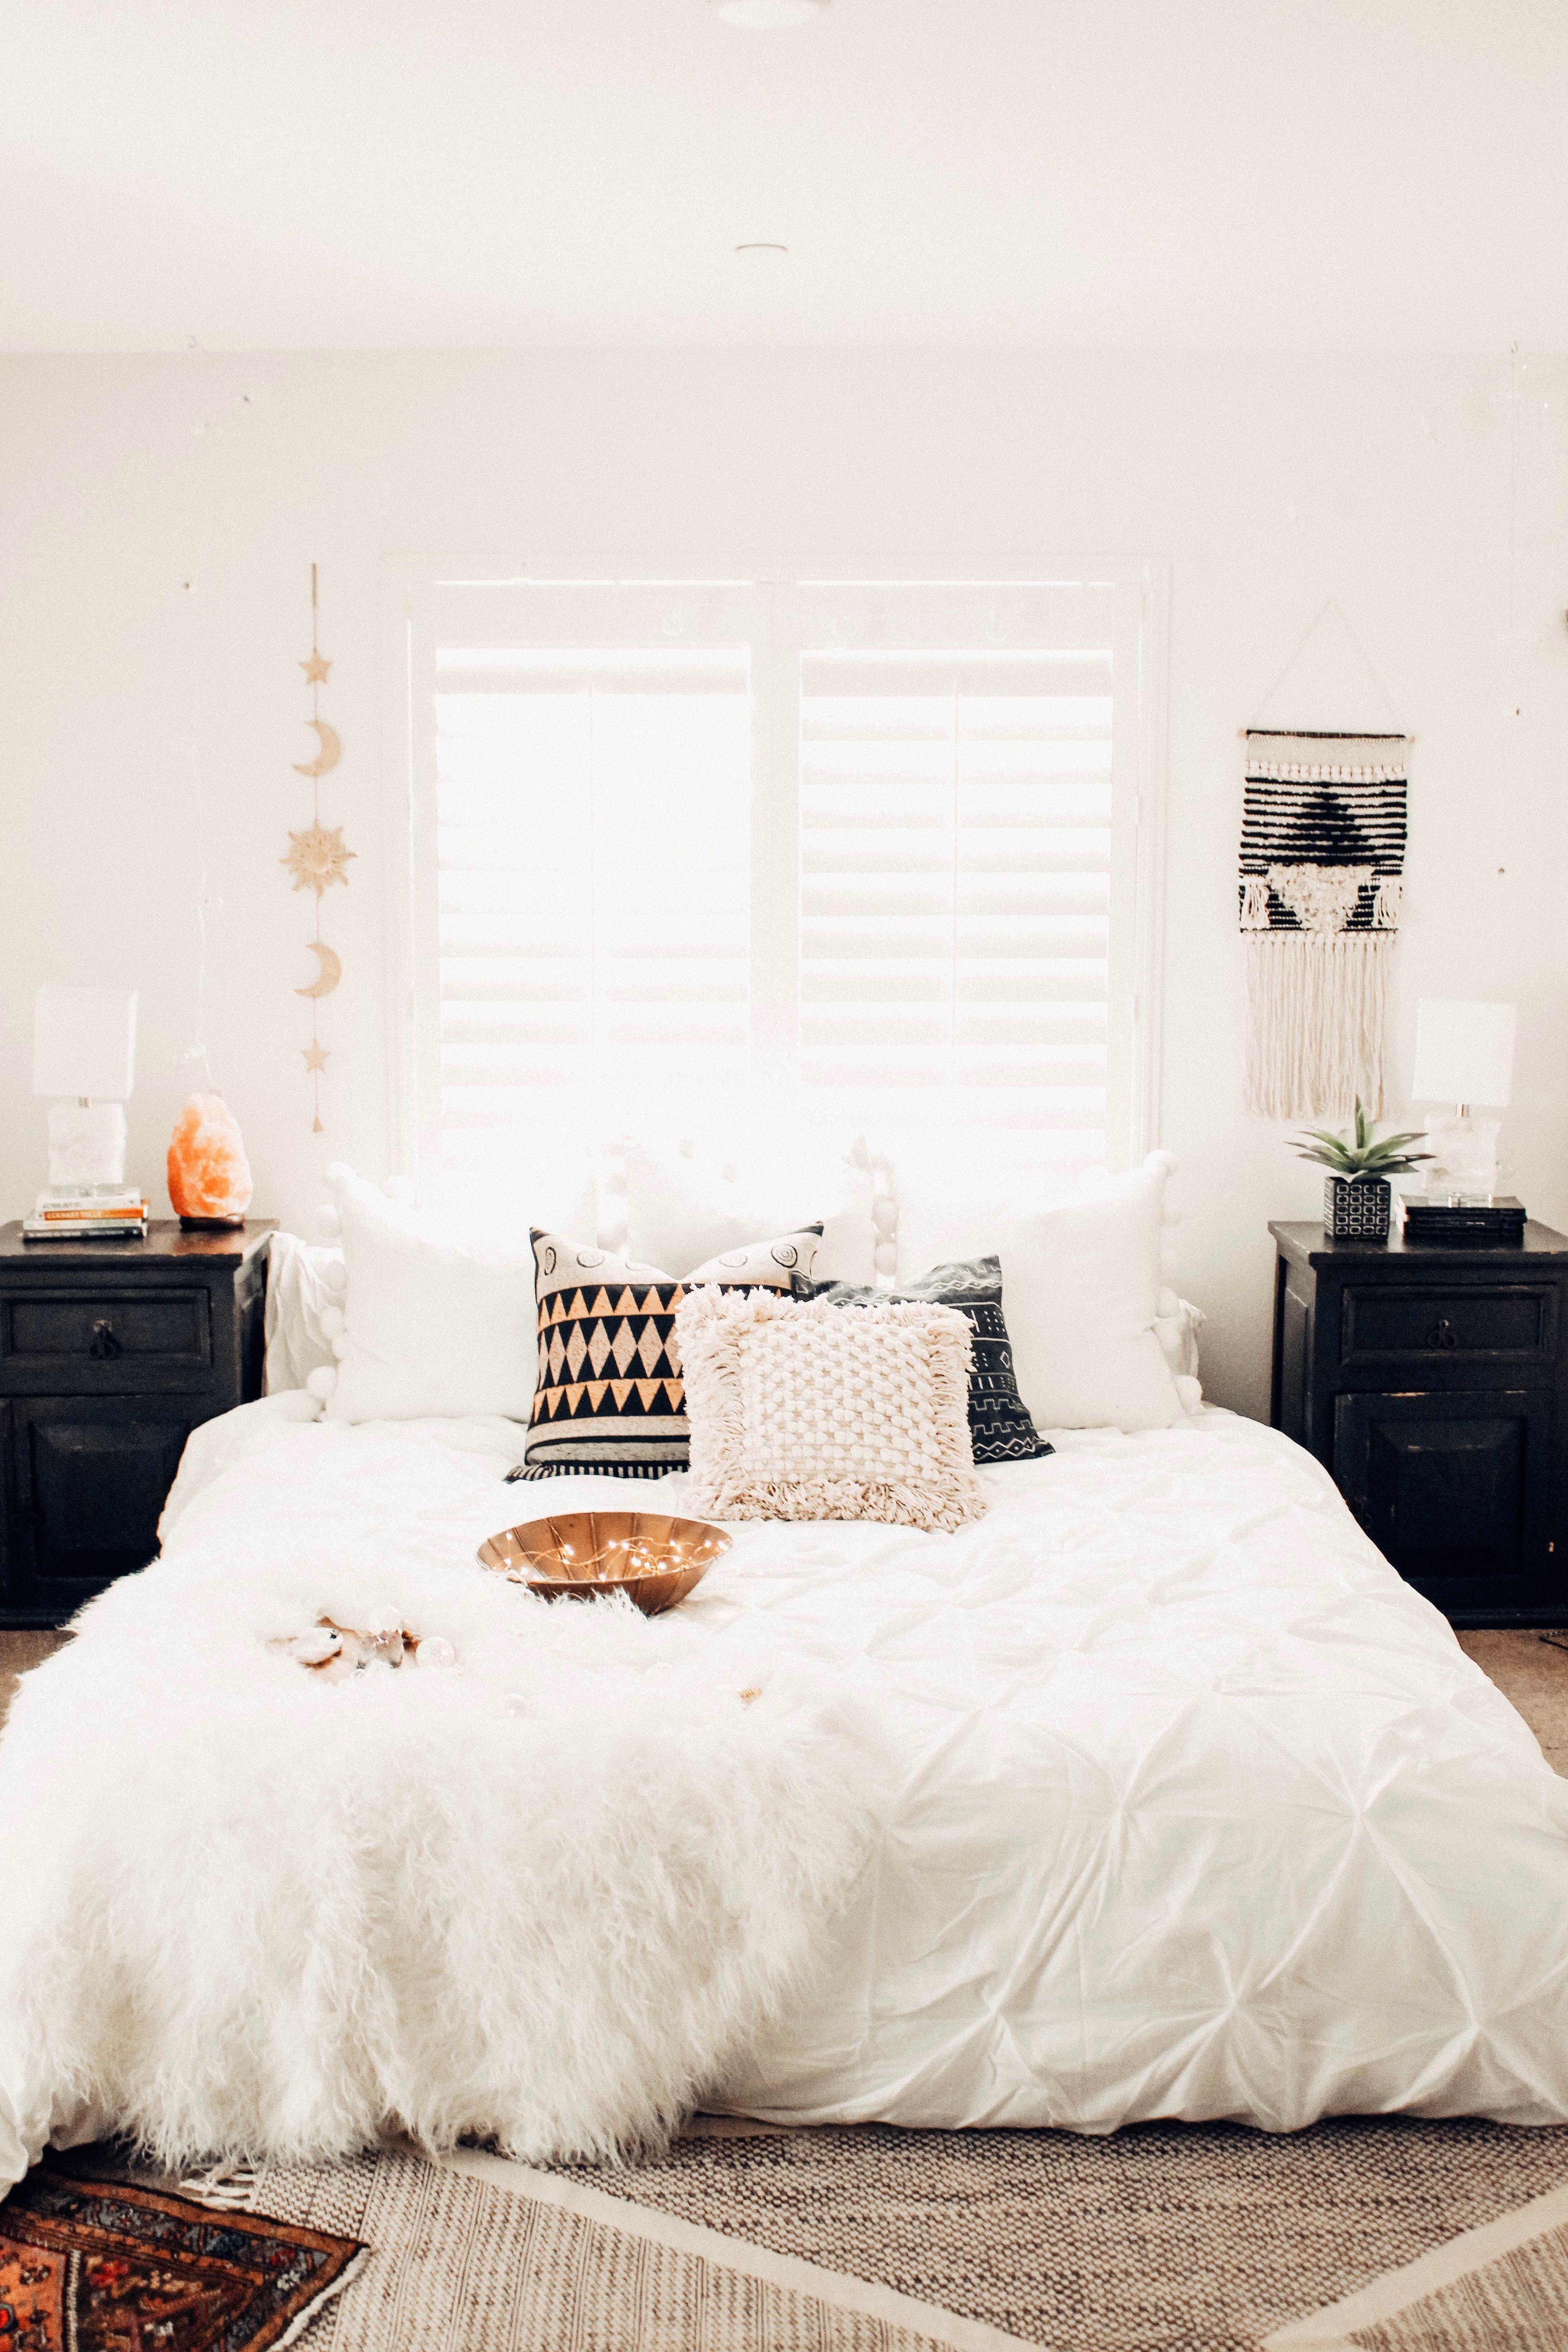 Inspired Boho Bedroom Decorating on a Budget (With images ... on Bohemian Bedroom Ideas On A Budget  id=82065